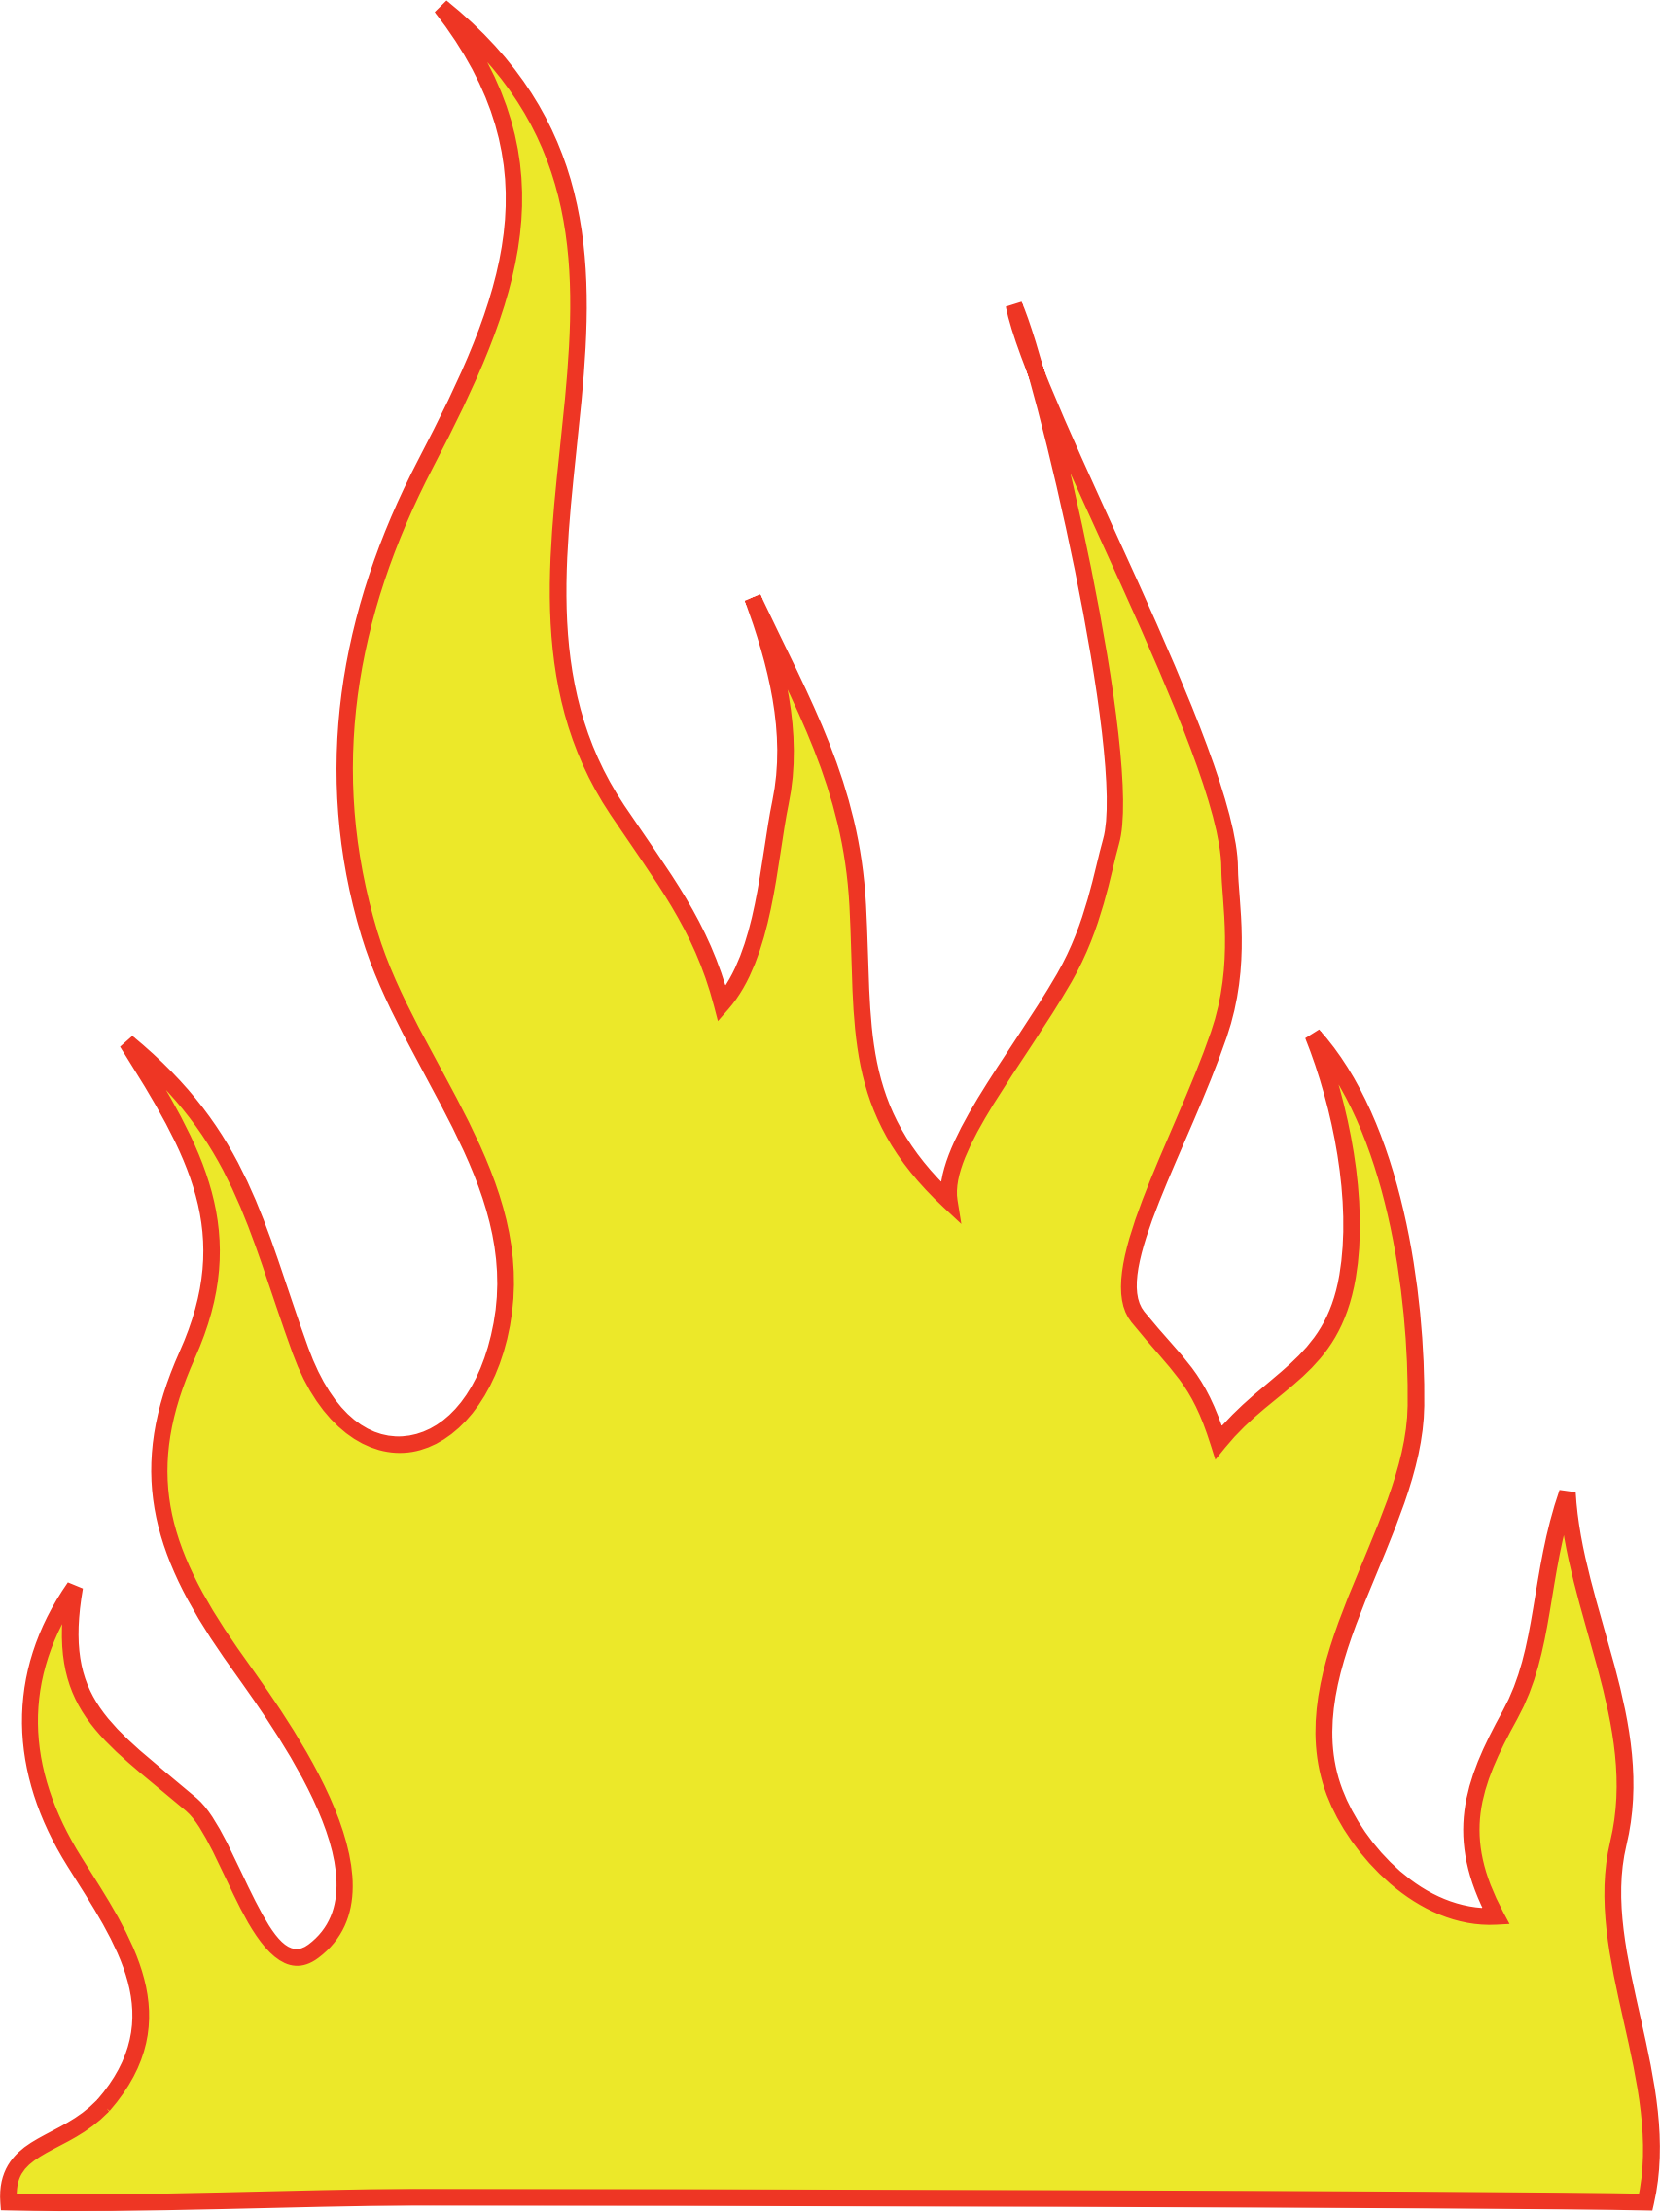 Clipart flames royalty free. Big image png